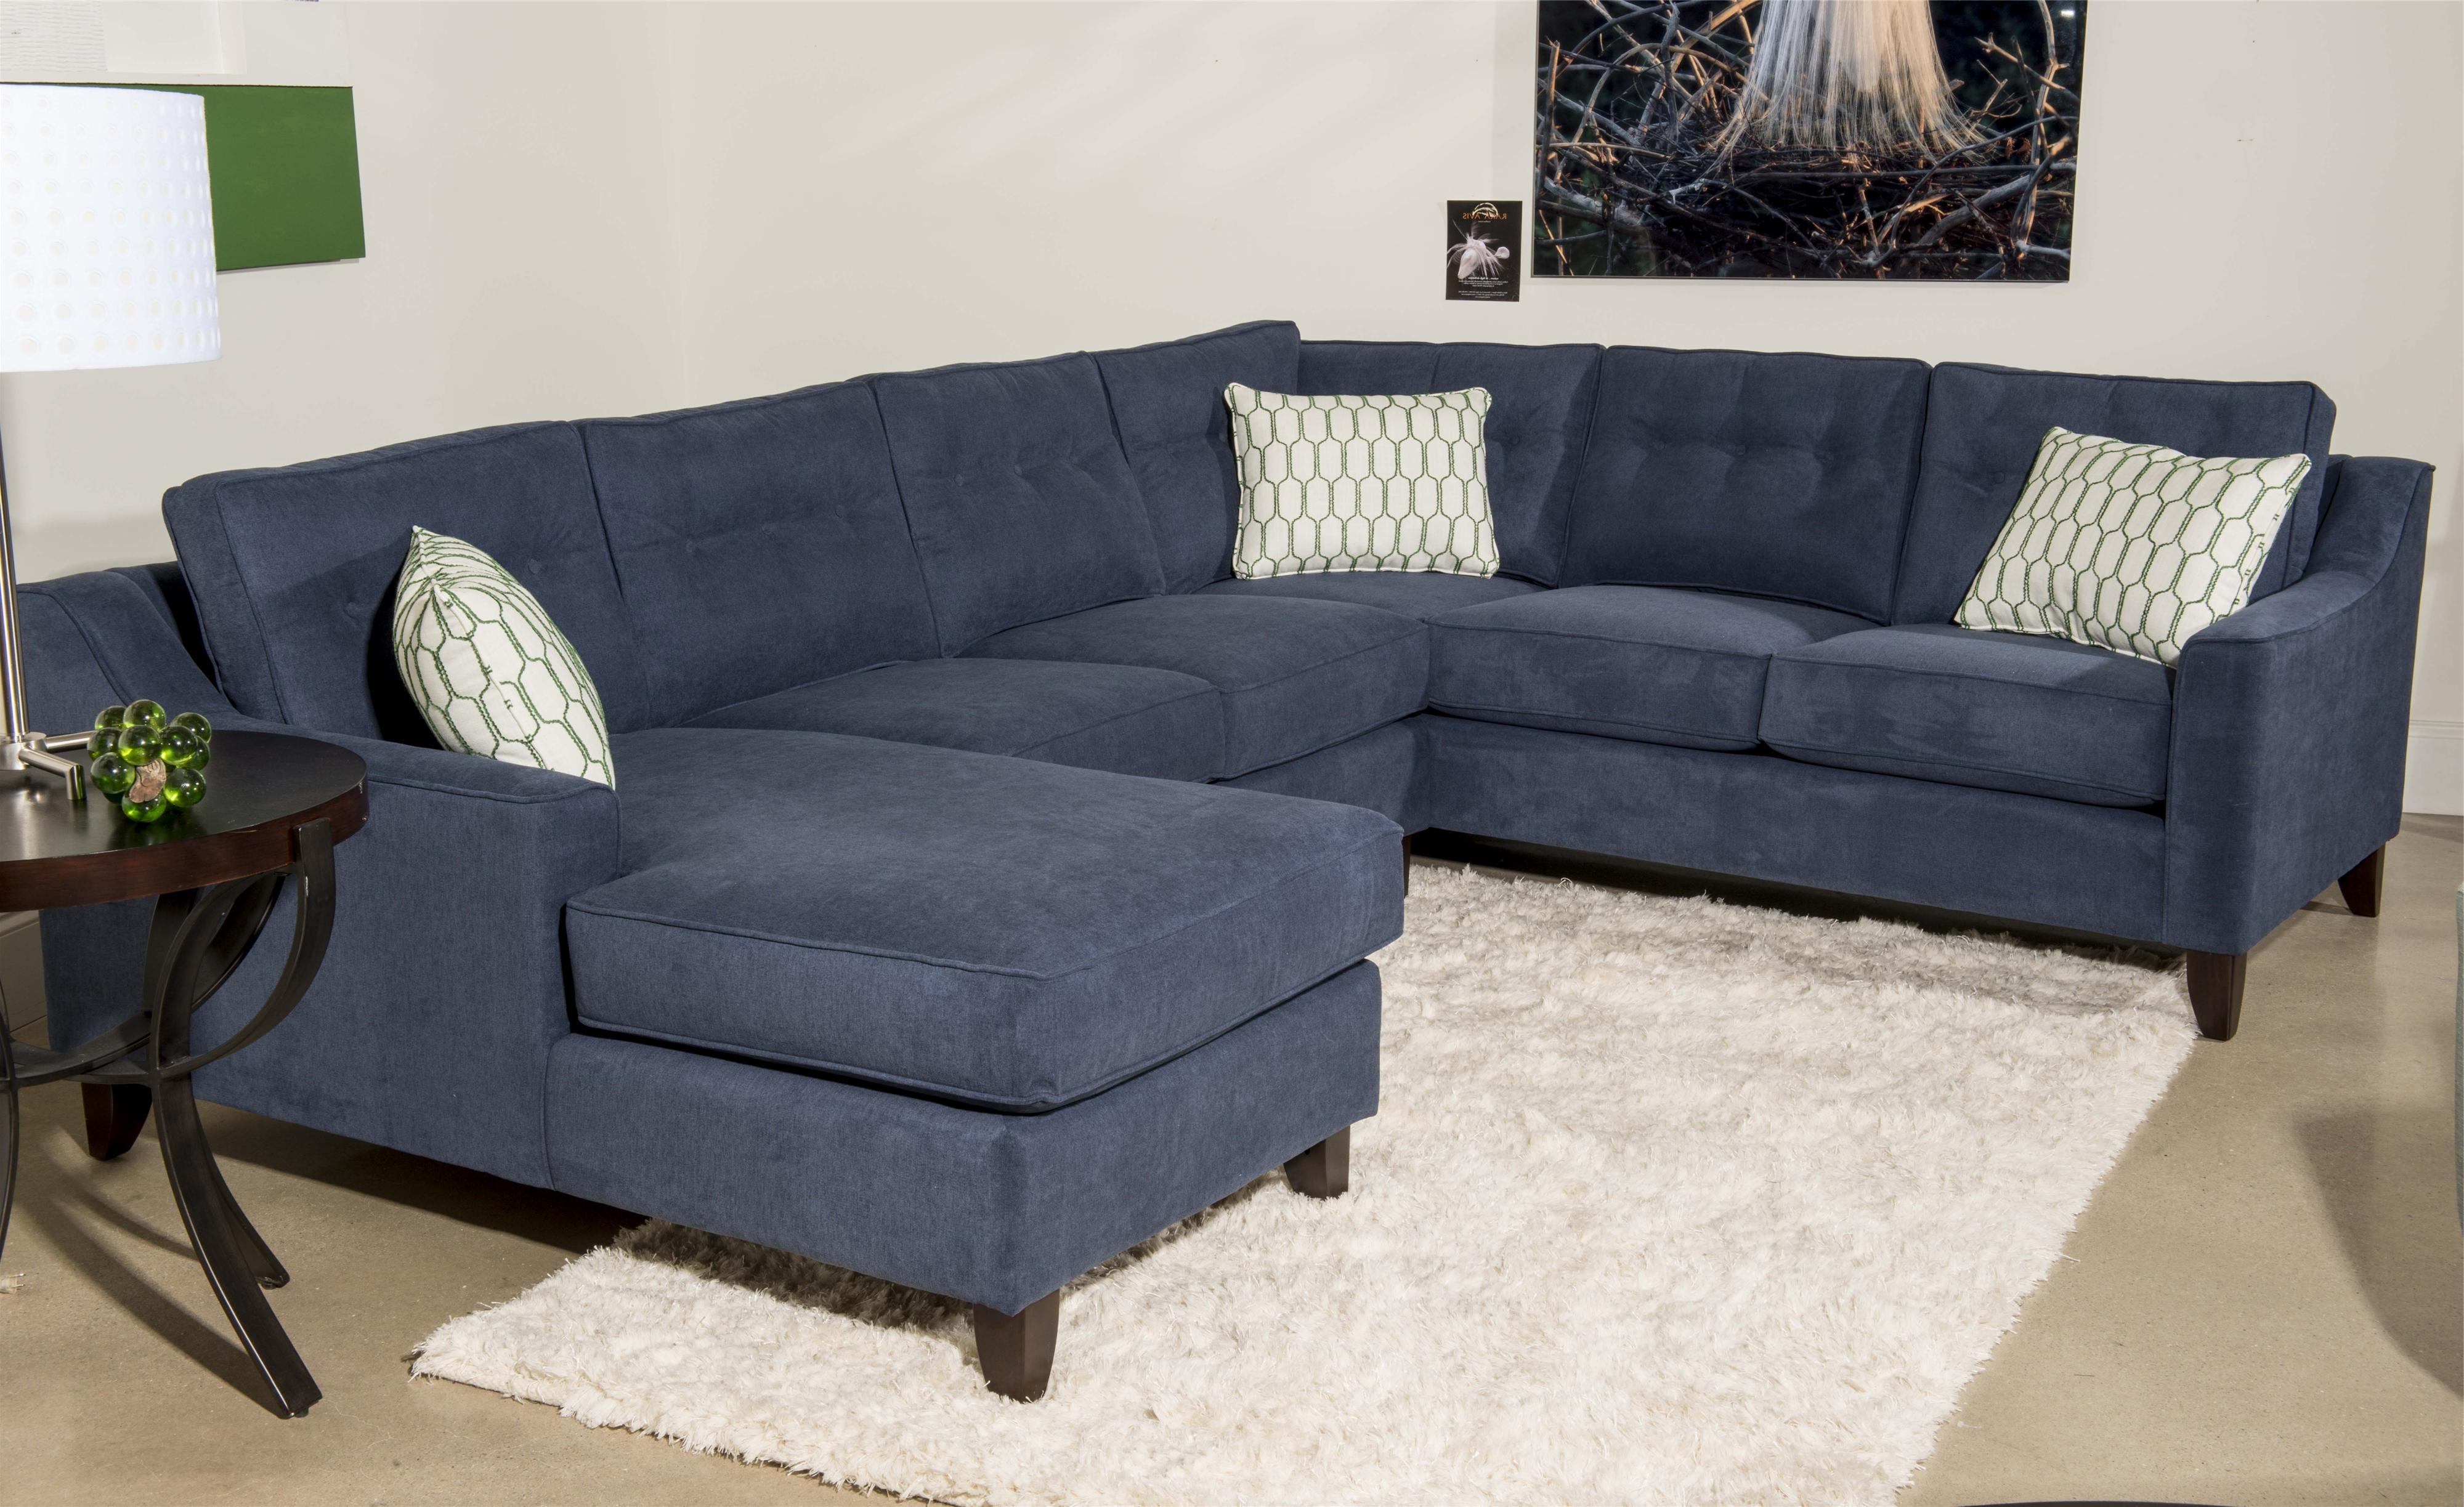 Blue Sectional Sofas With Most Recent Costco Living Room Furniture Small Sectional Sofas For Small (View 12 of 20)